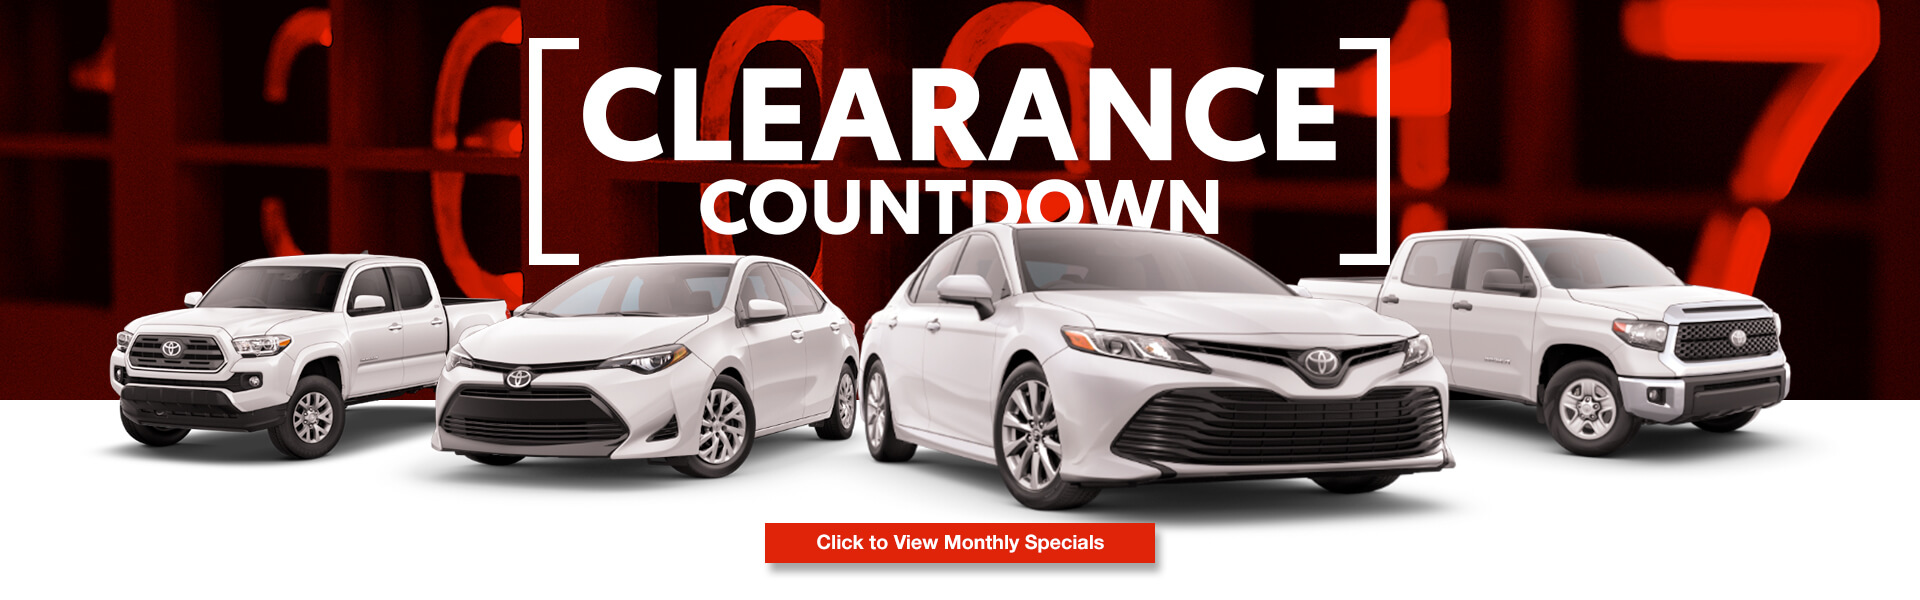 Toyota of huntington beach serving westminster fountain valley sales event solutioingenieria Images